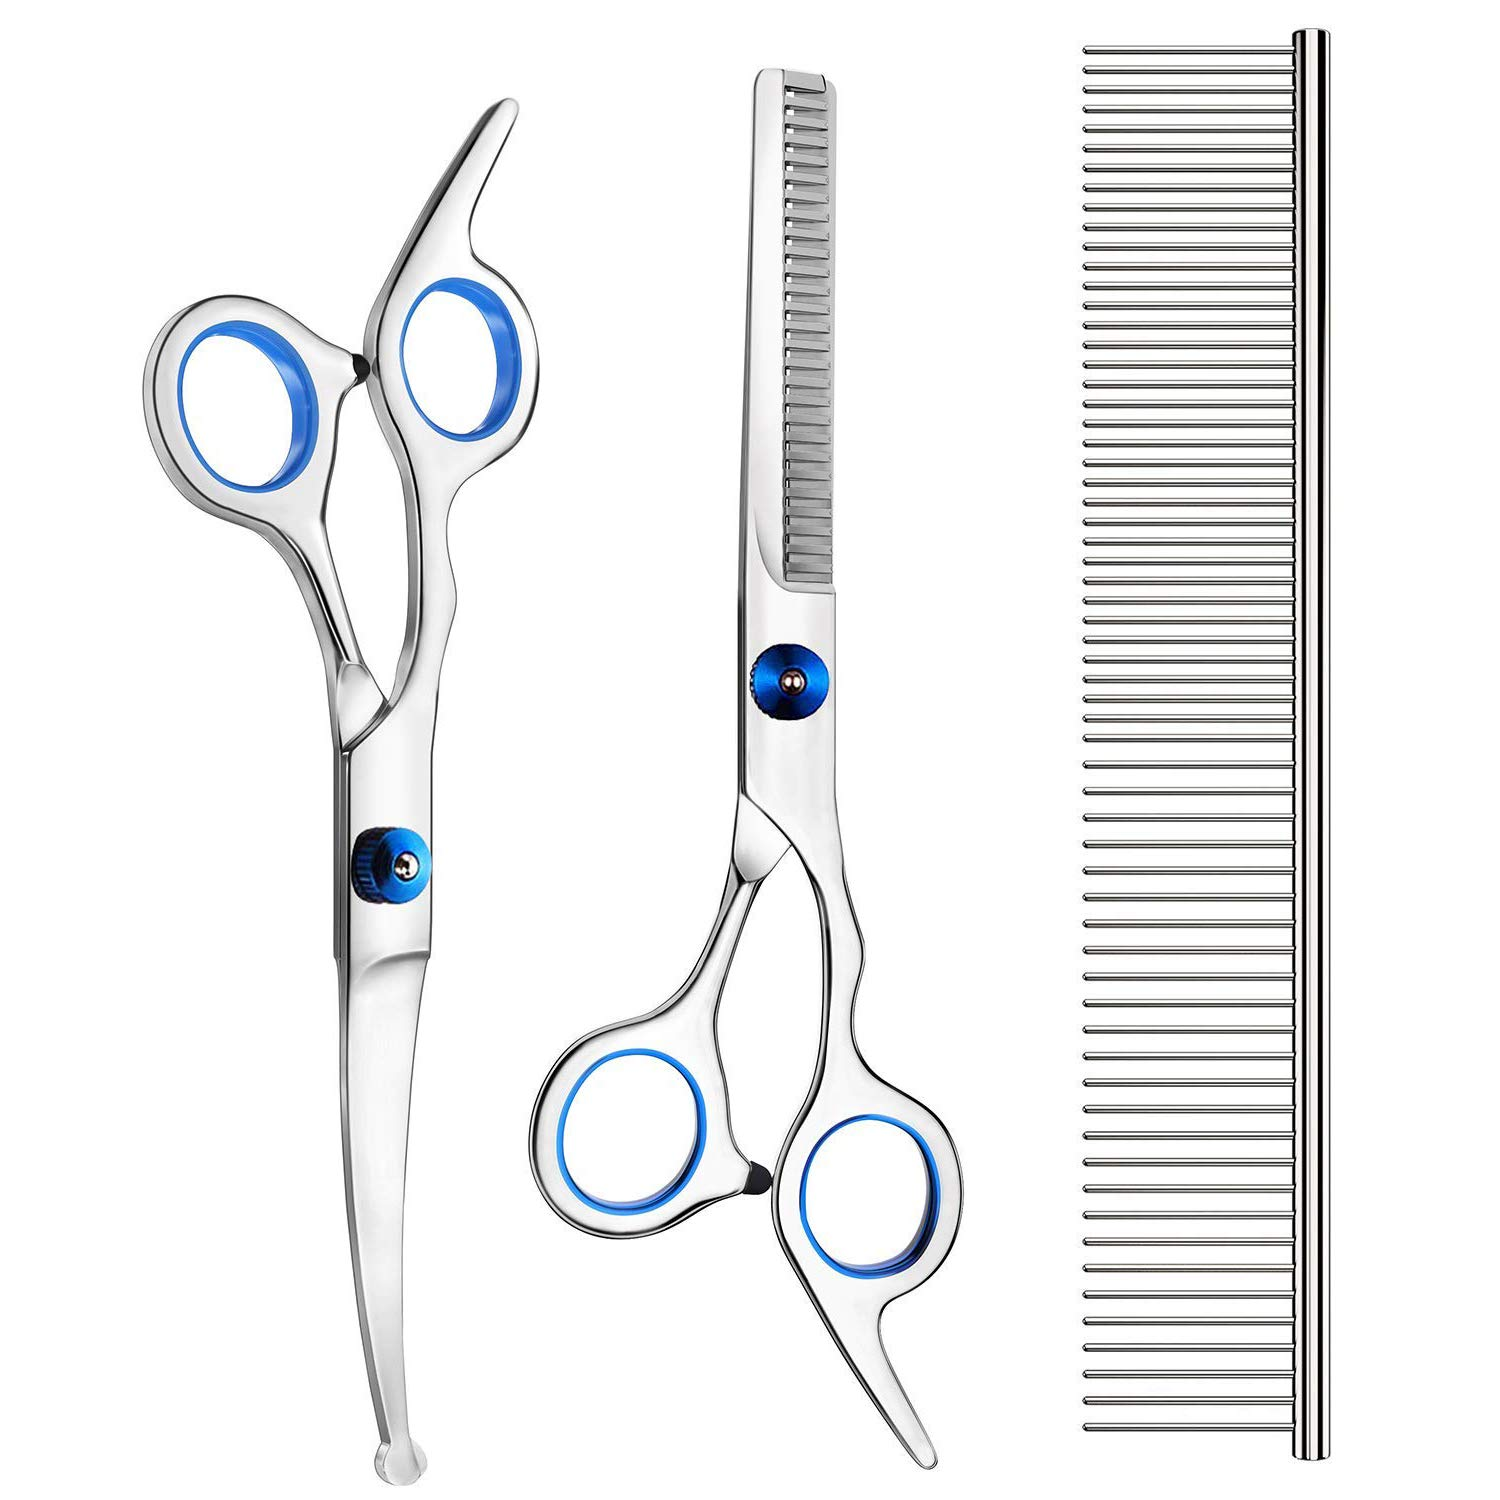 Petsvv 3 Pack Dog Grooming Scissors with Safety Round Tip, Perfect Stainless Steel Up-Curved Grooming Scissors Thinning Cutting Shears with Pet Grooming Comb for Dogs and Cats